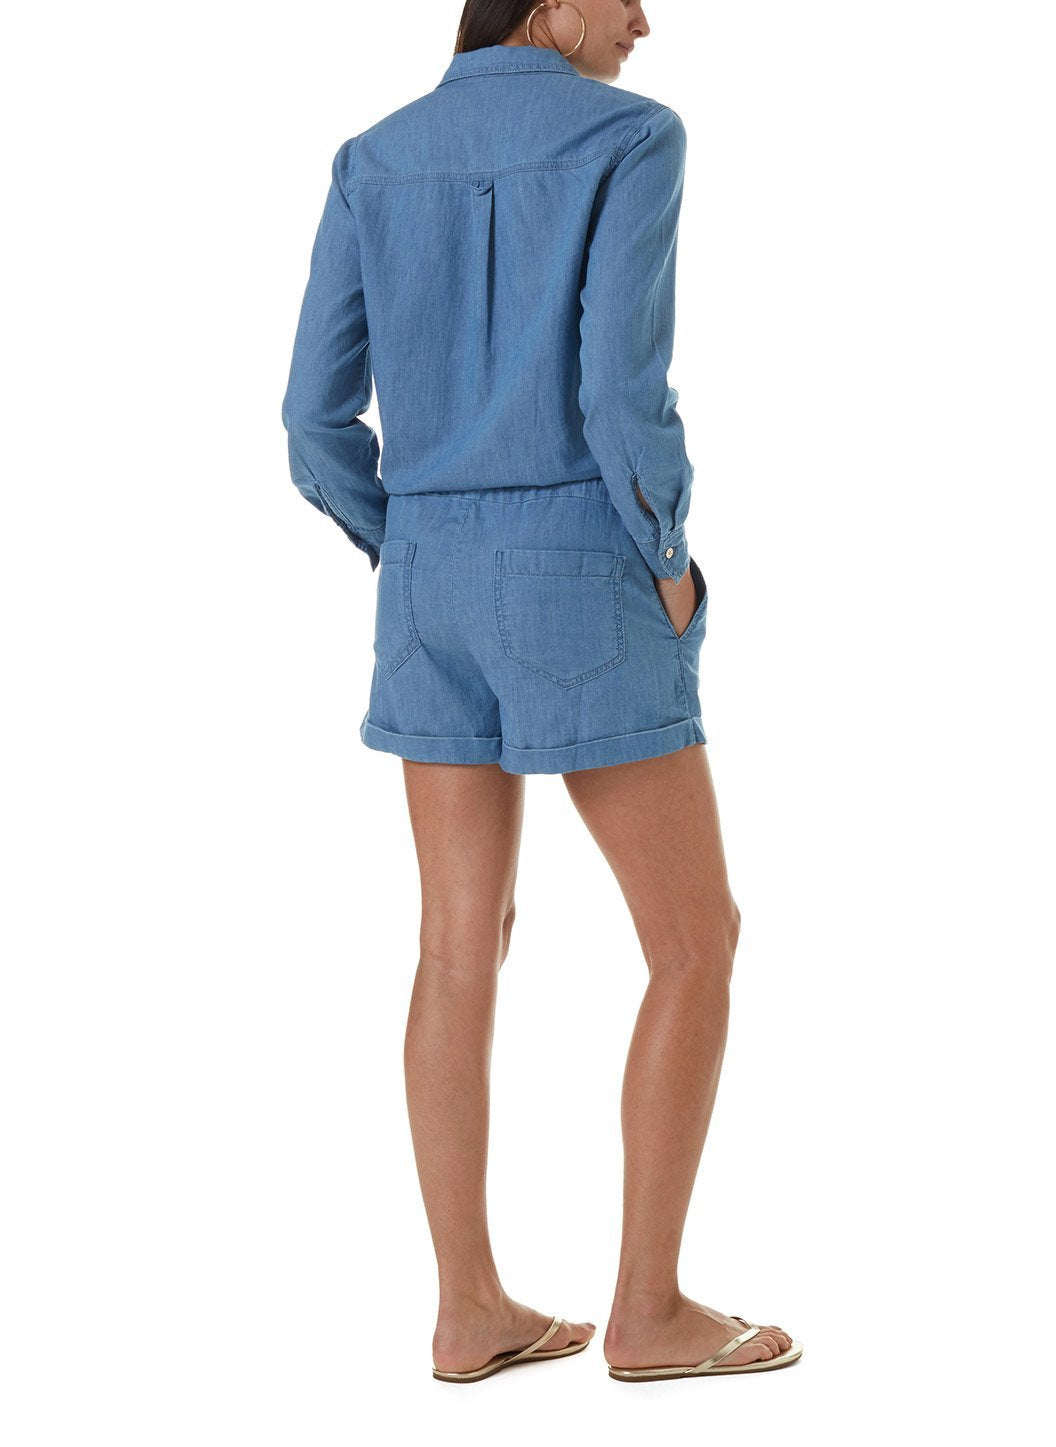 Honour Denim Playsuit